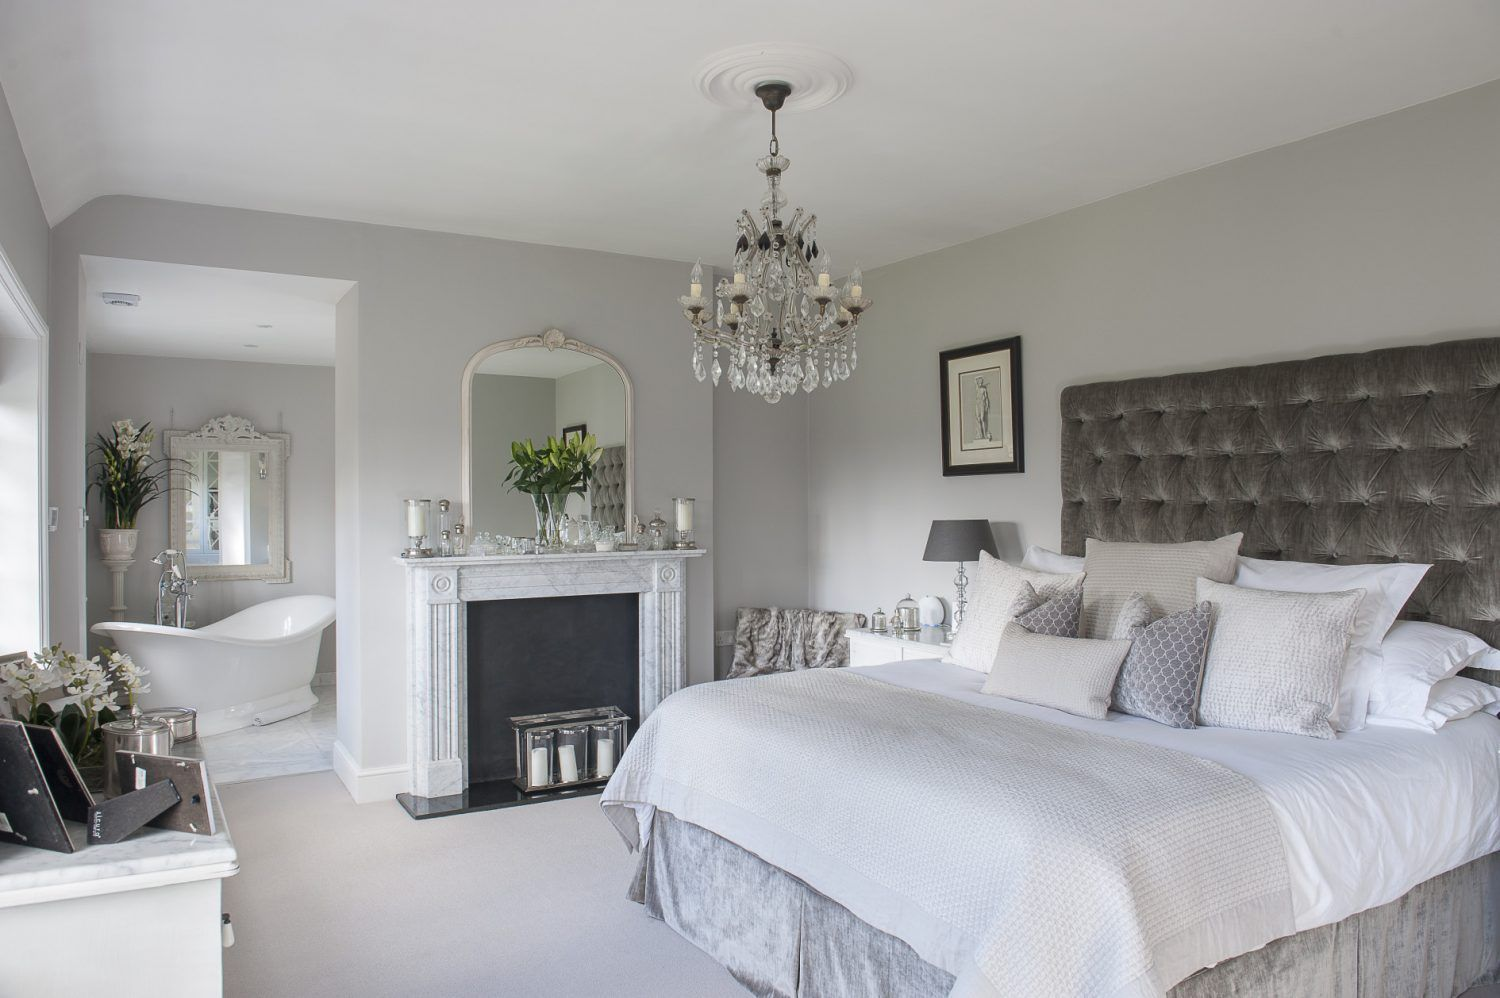 10*10 bedroom interior  bedroom interior design trends for this year tags bedroom